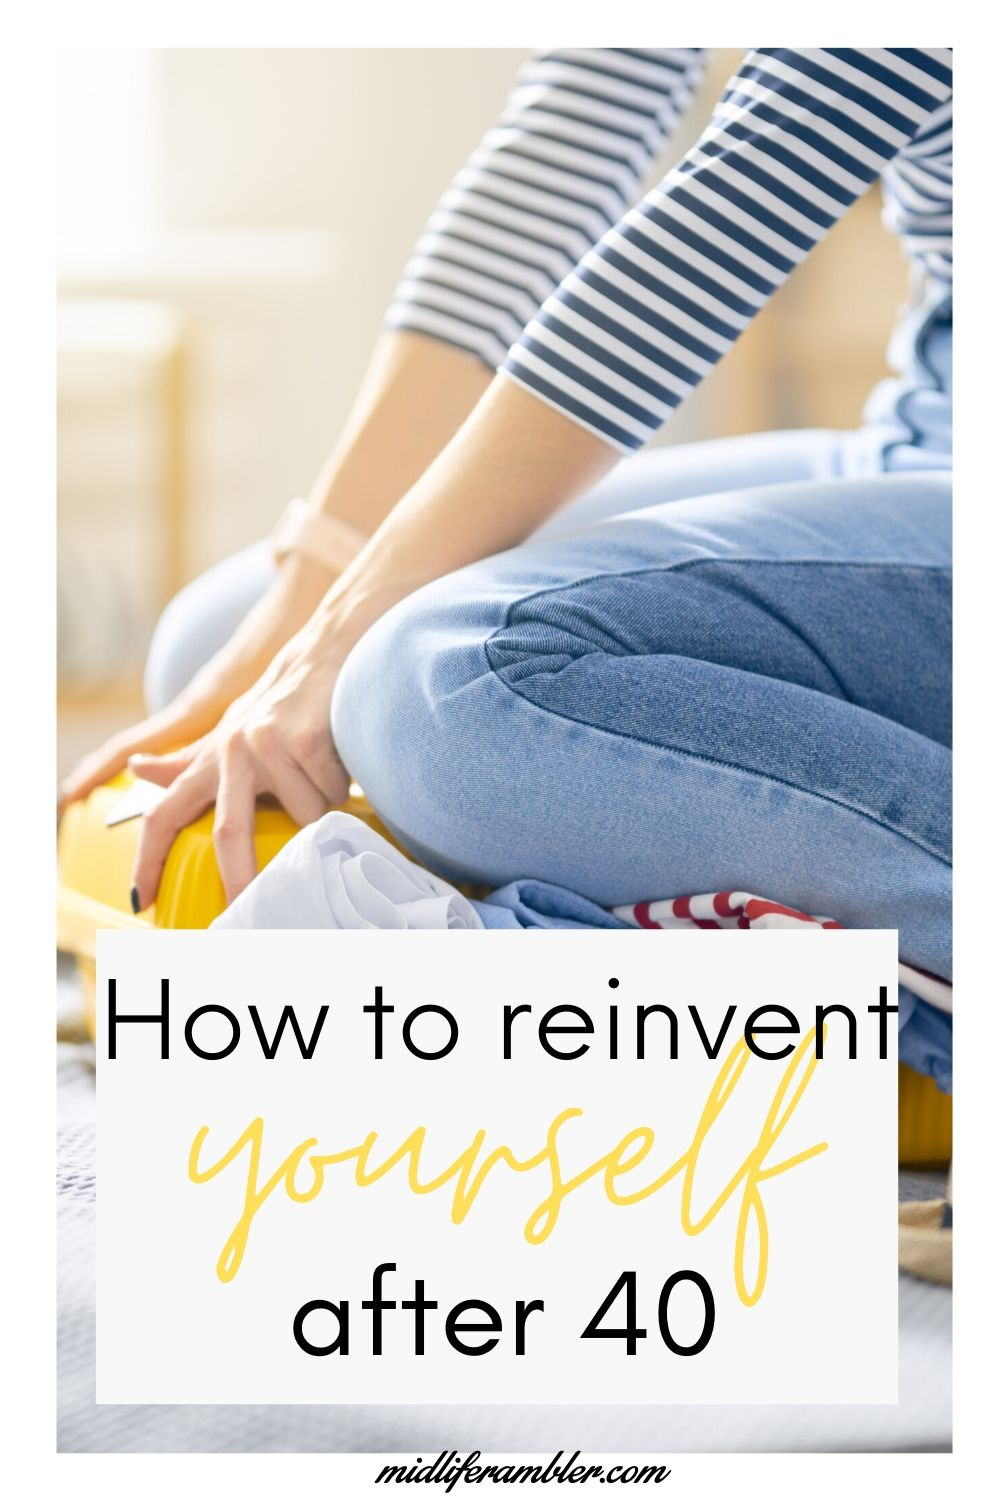 Here's What You Need to Know about How to Reinvent Yourself at 40 10